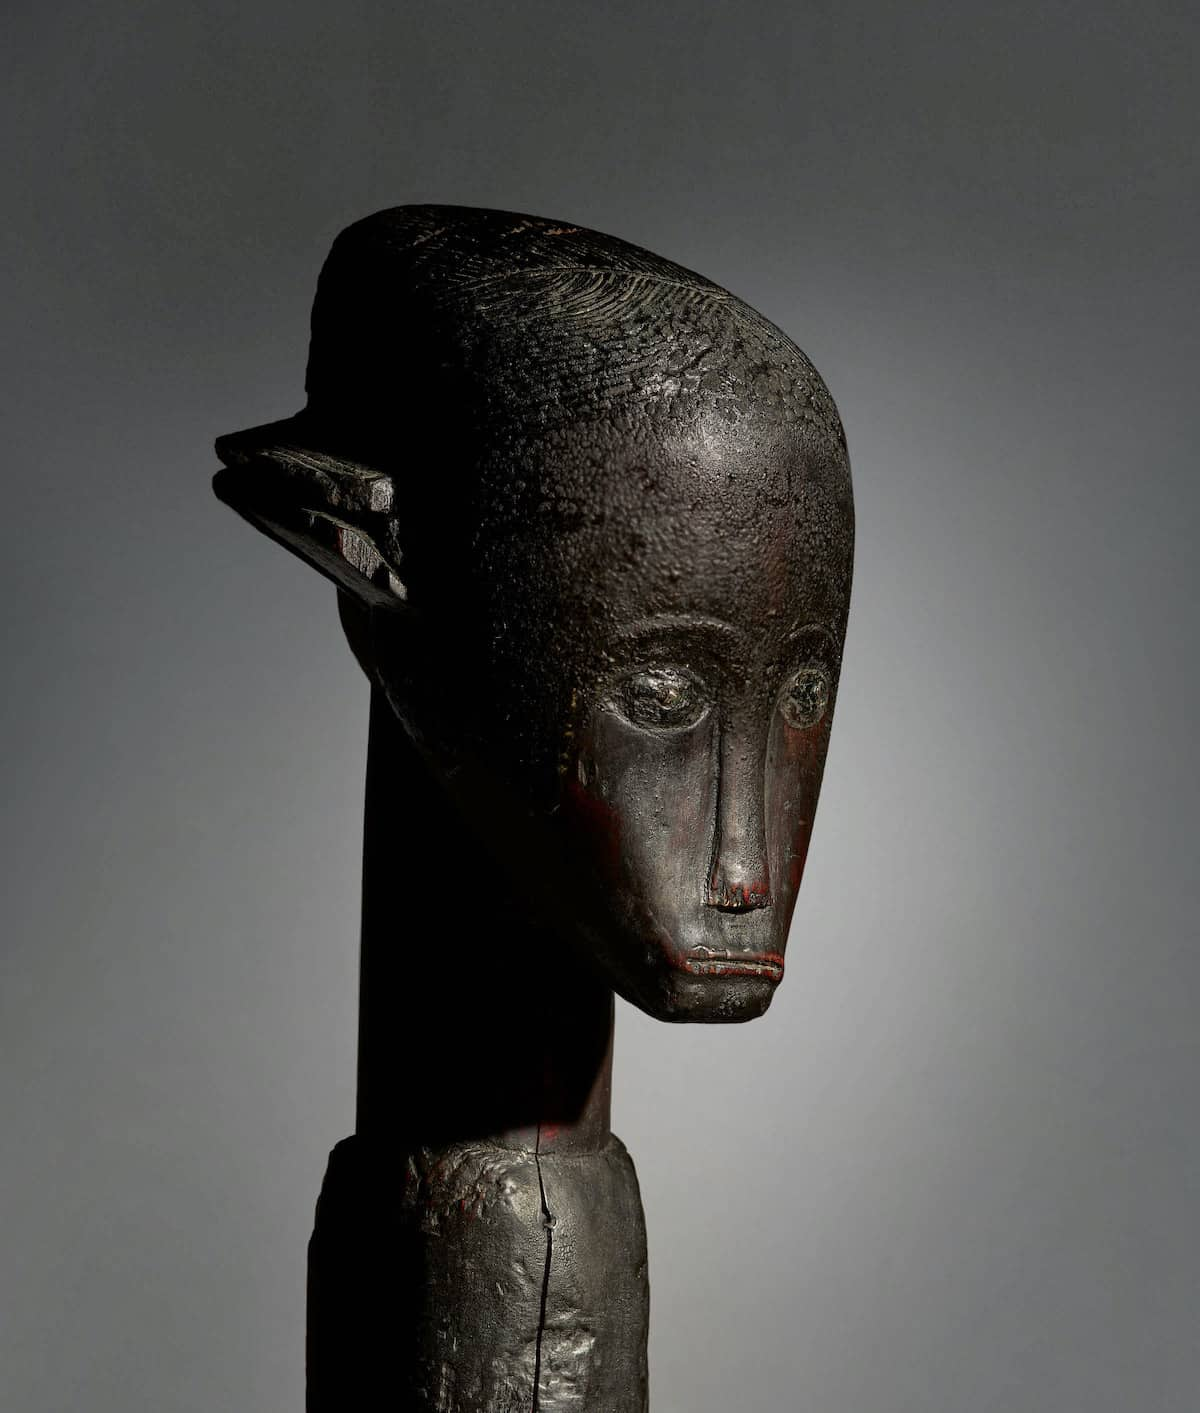 The Fang-Betsi reliquary statue headed to Sotheby's in June.